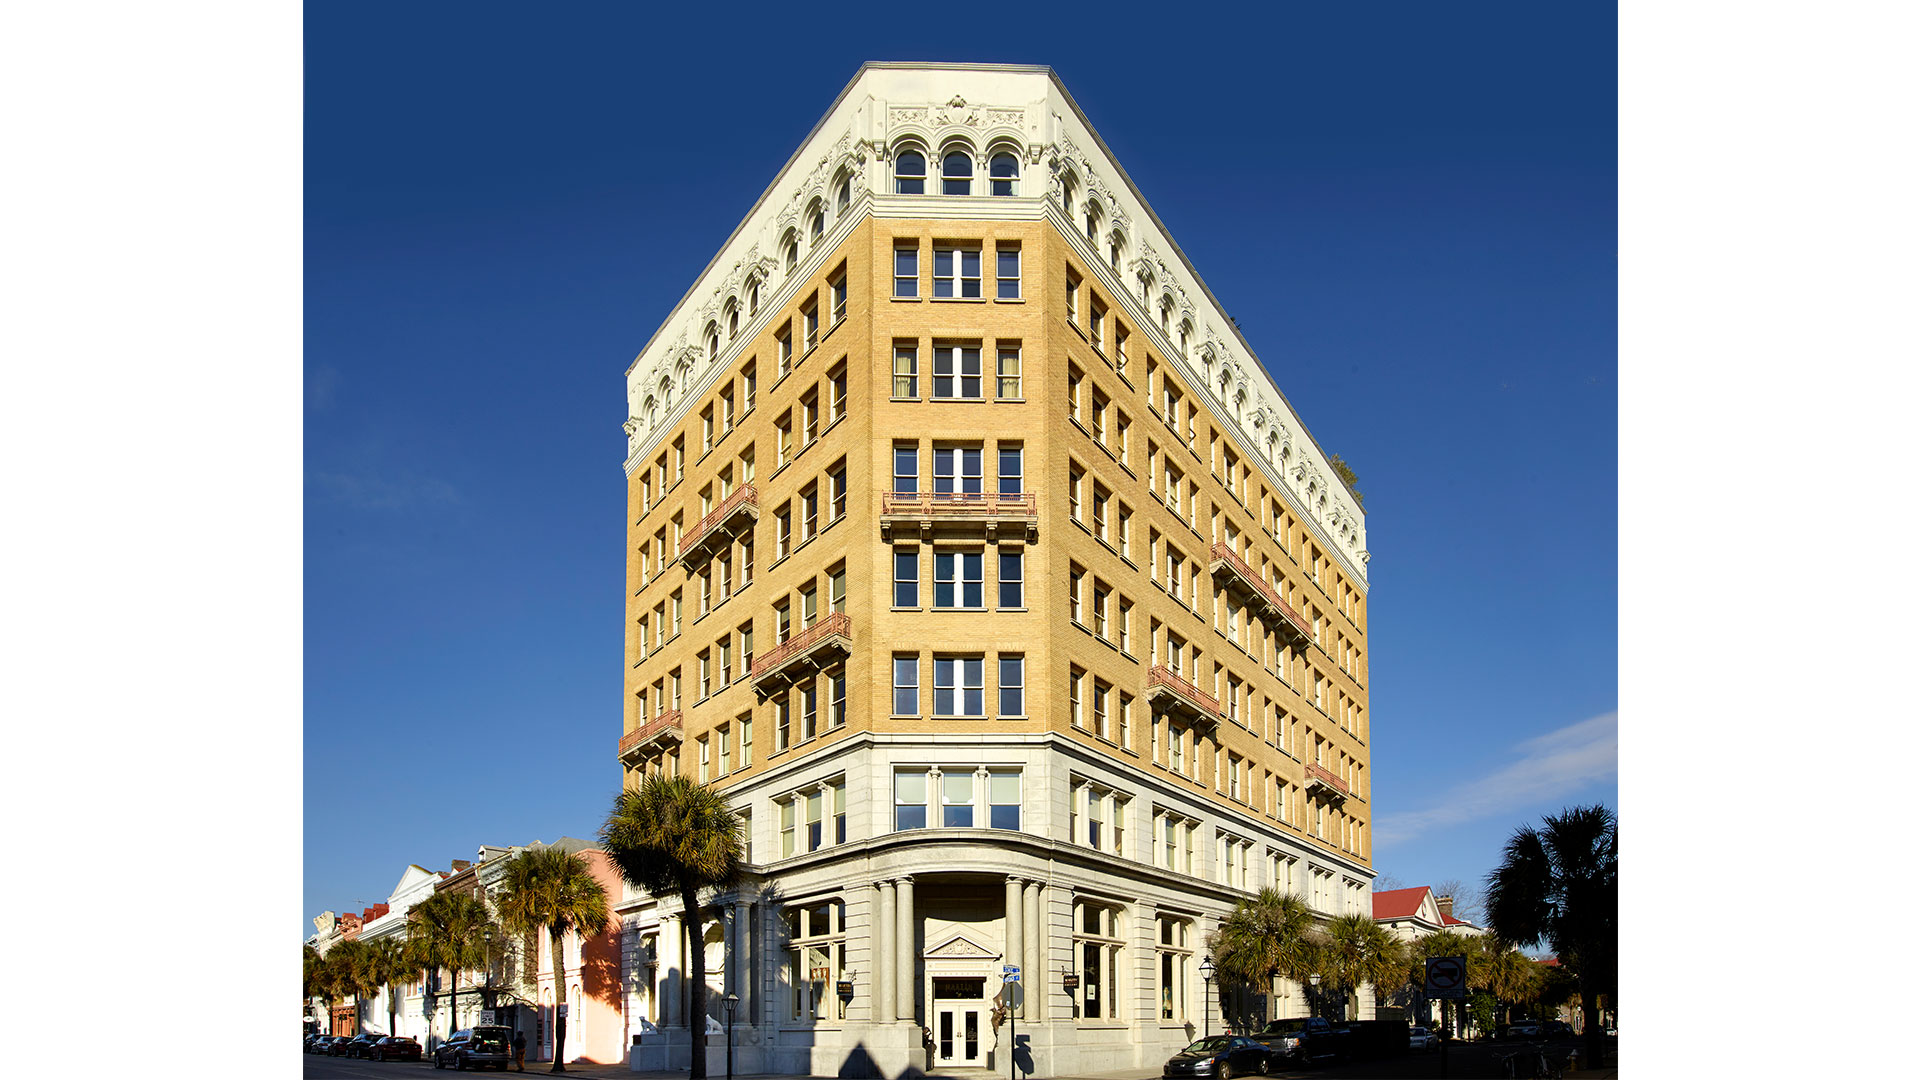 Charleston People's Building Penthouse